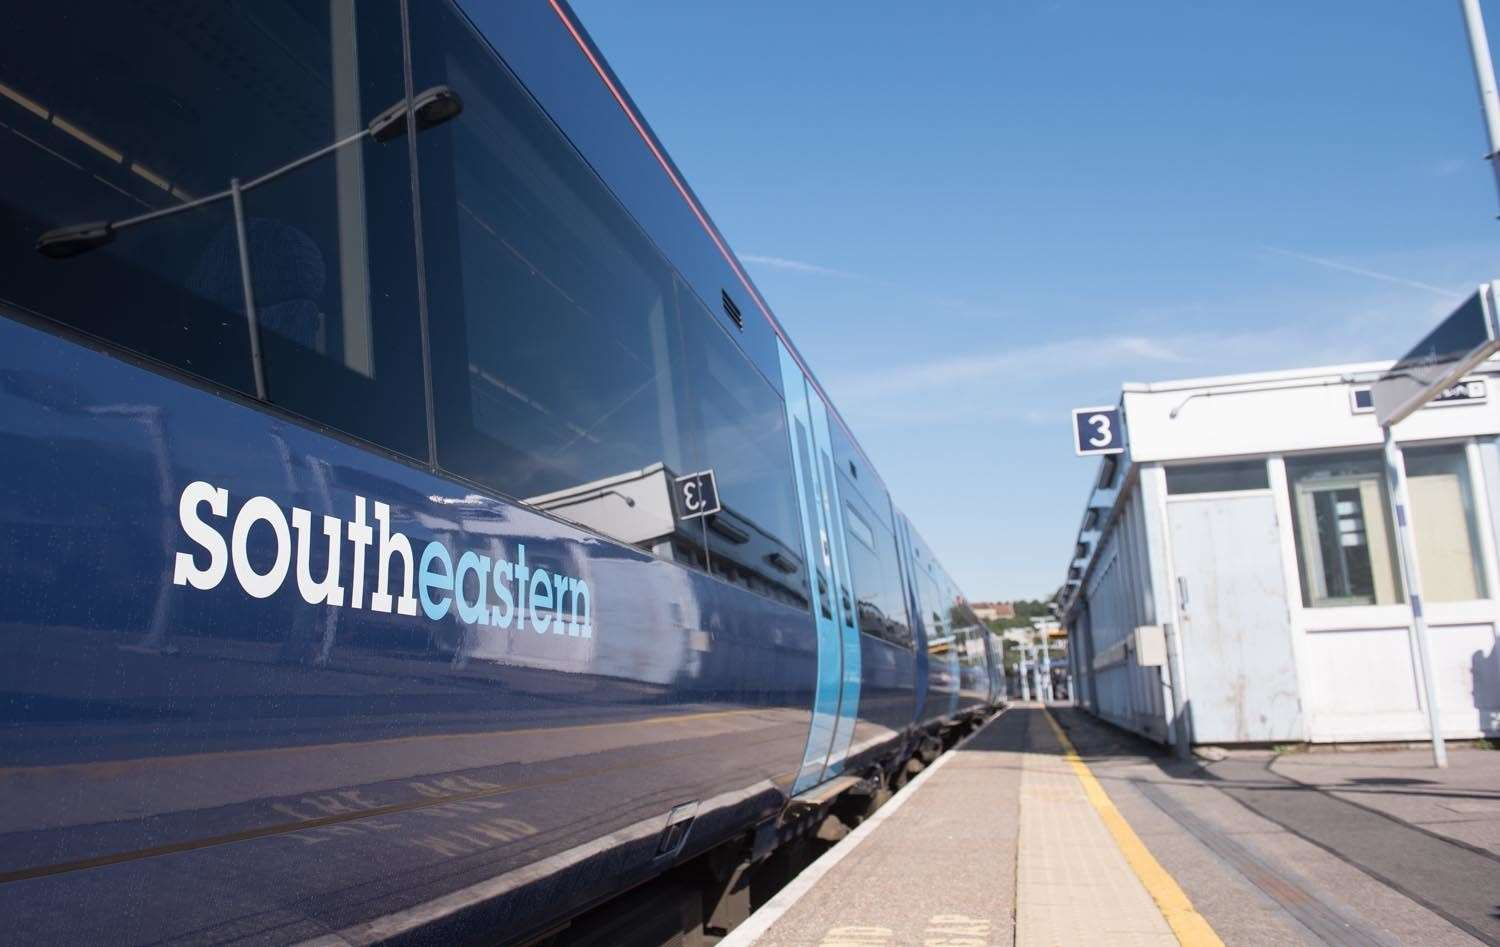 A Southeastern train. Stock picture (14075434)